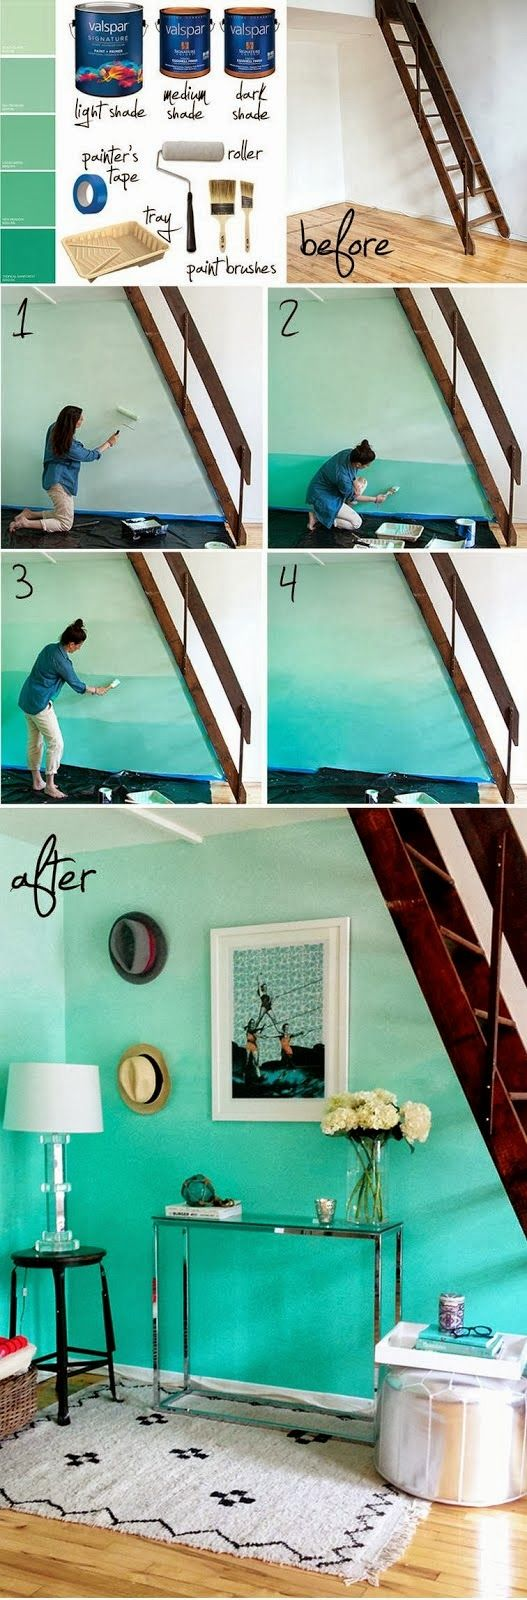 Diy wall painting ideas - 15 Simple Ideas To Make Wall Arts